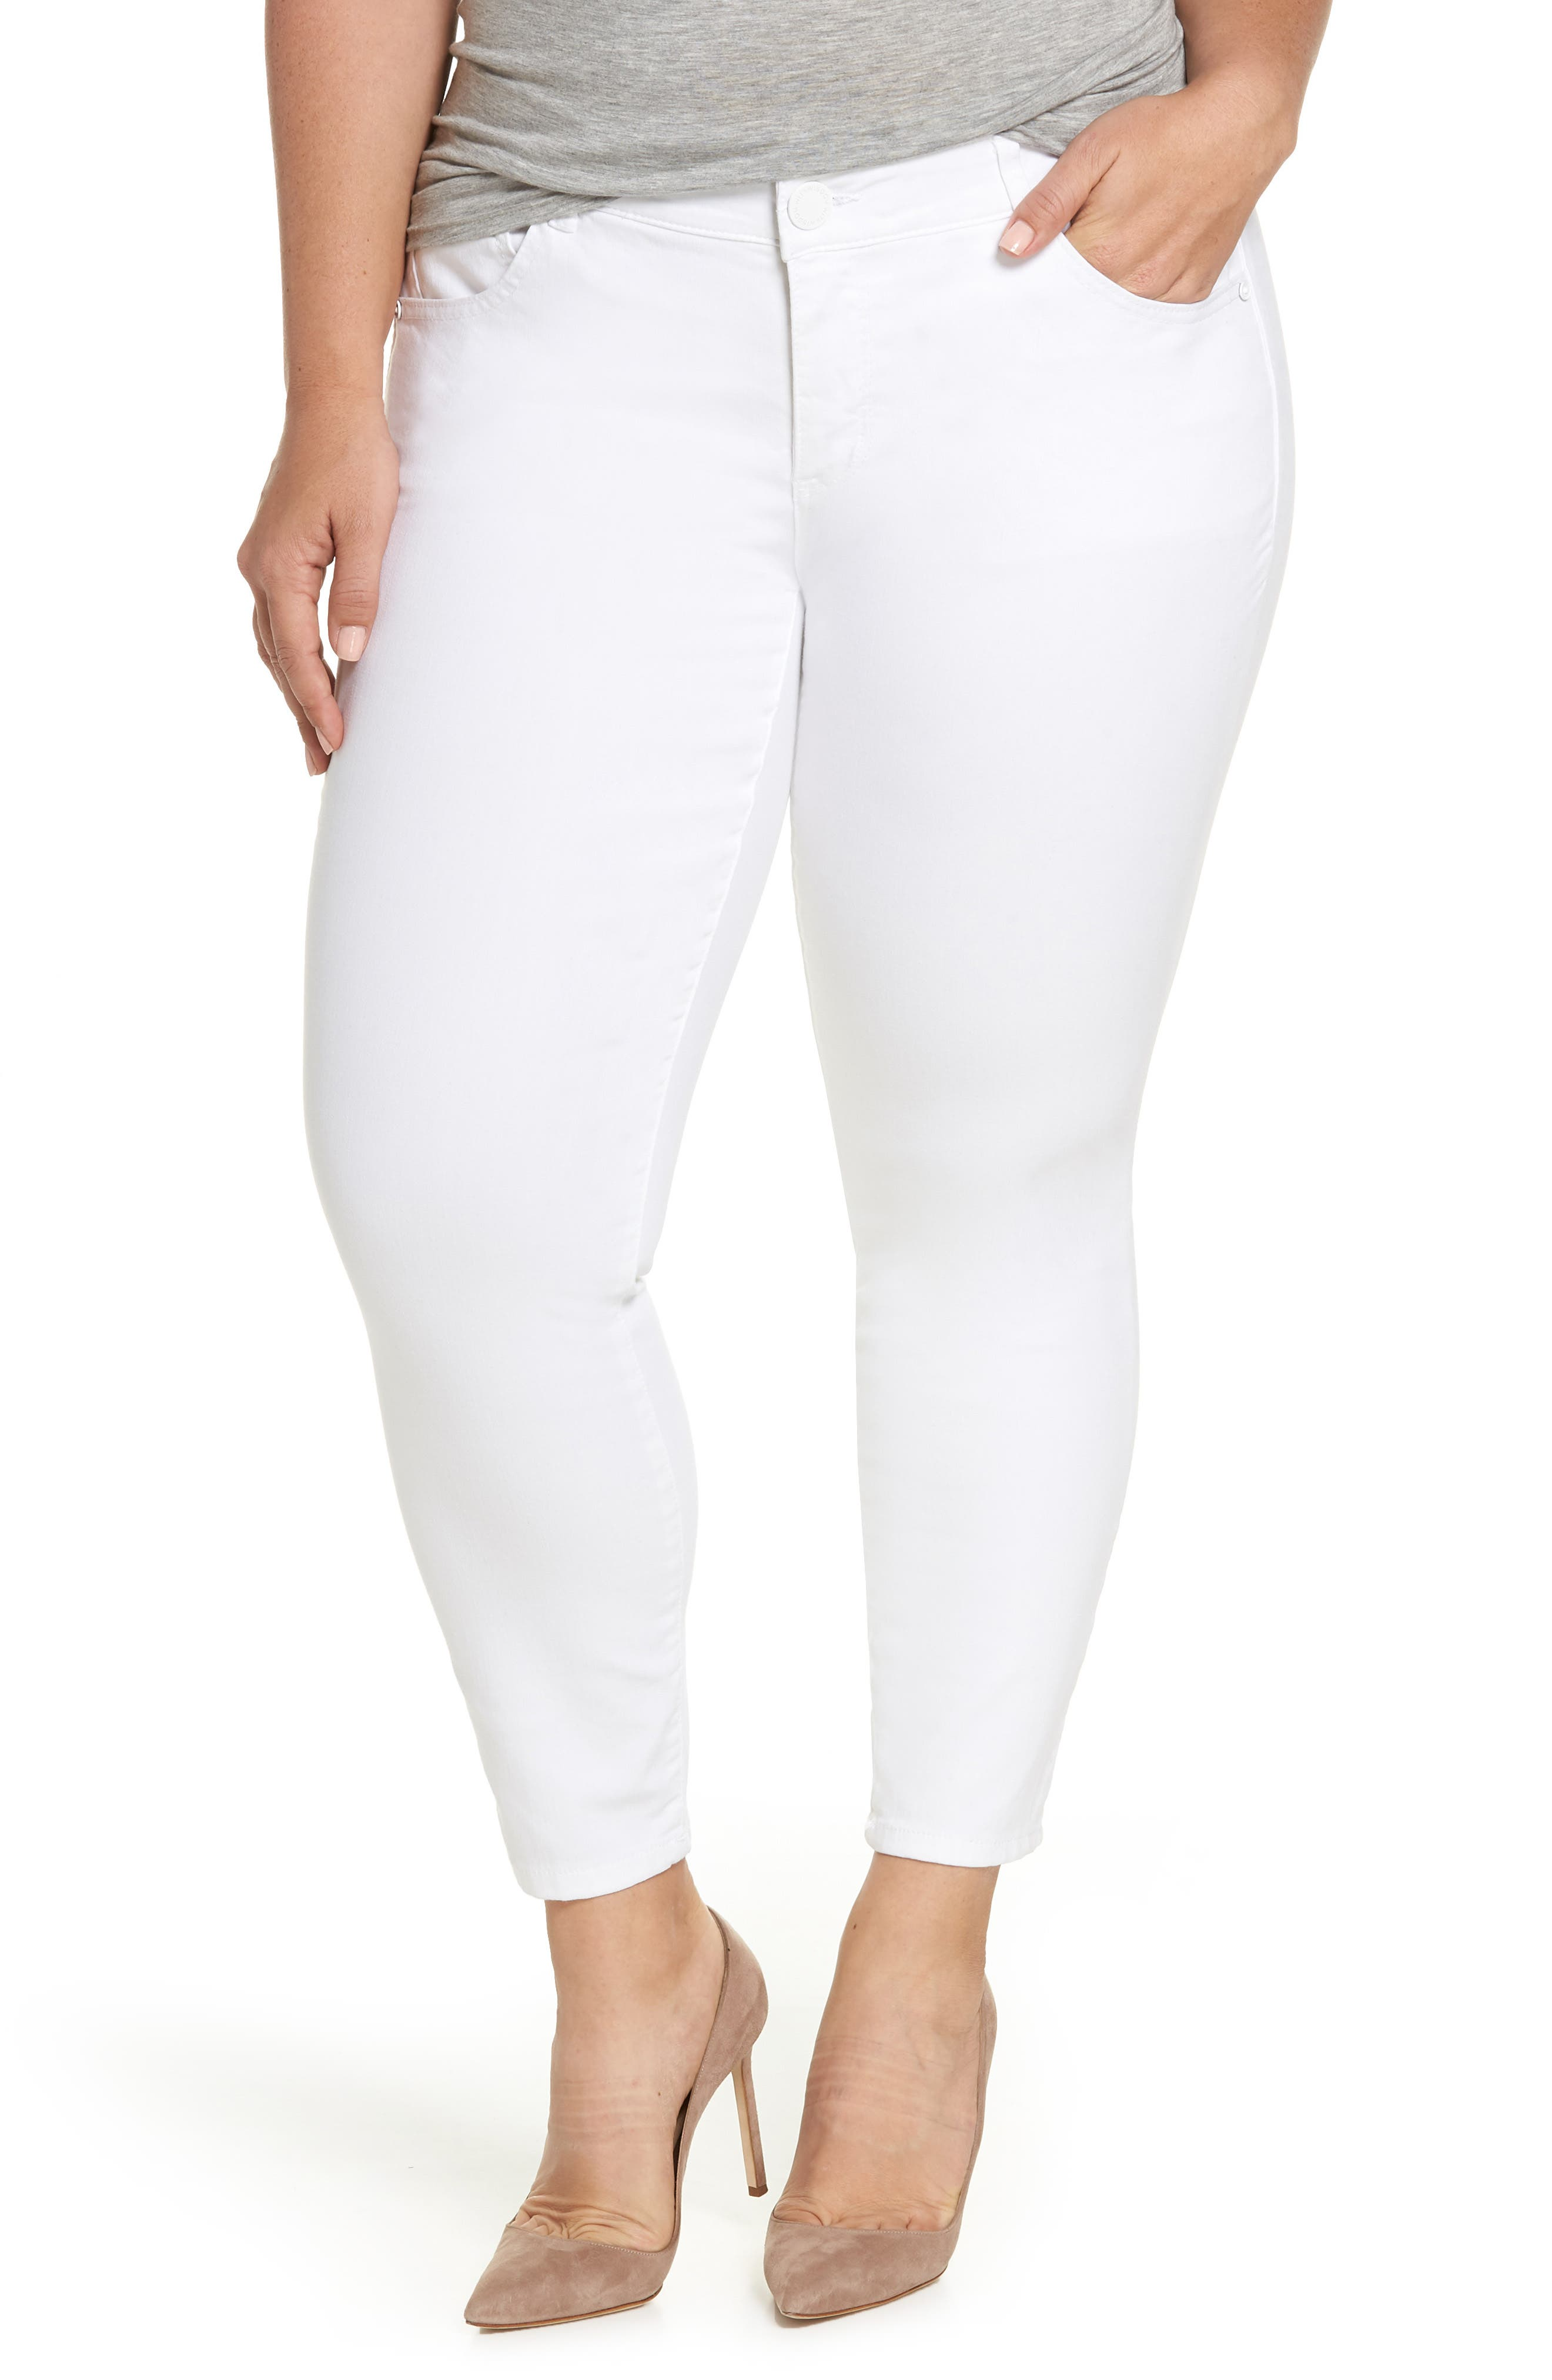 Ab-solution Ankle Skimmer Jeans,                             Main thumbnail 1, color,                             106